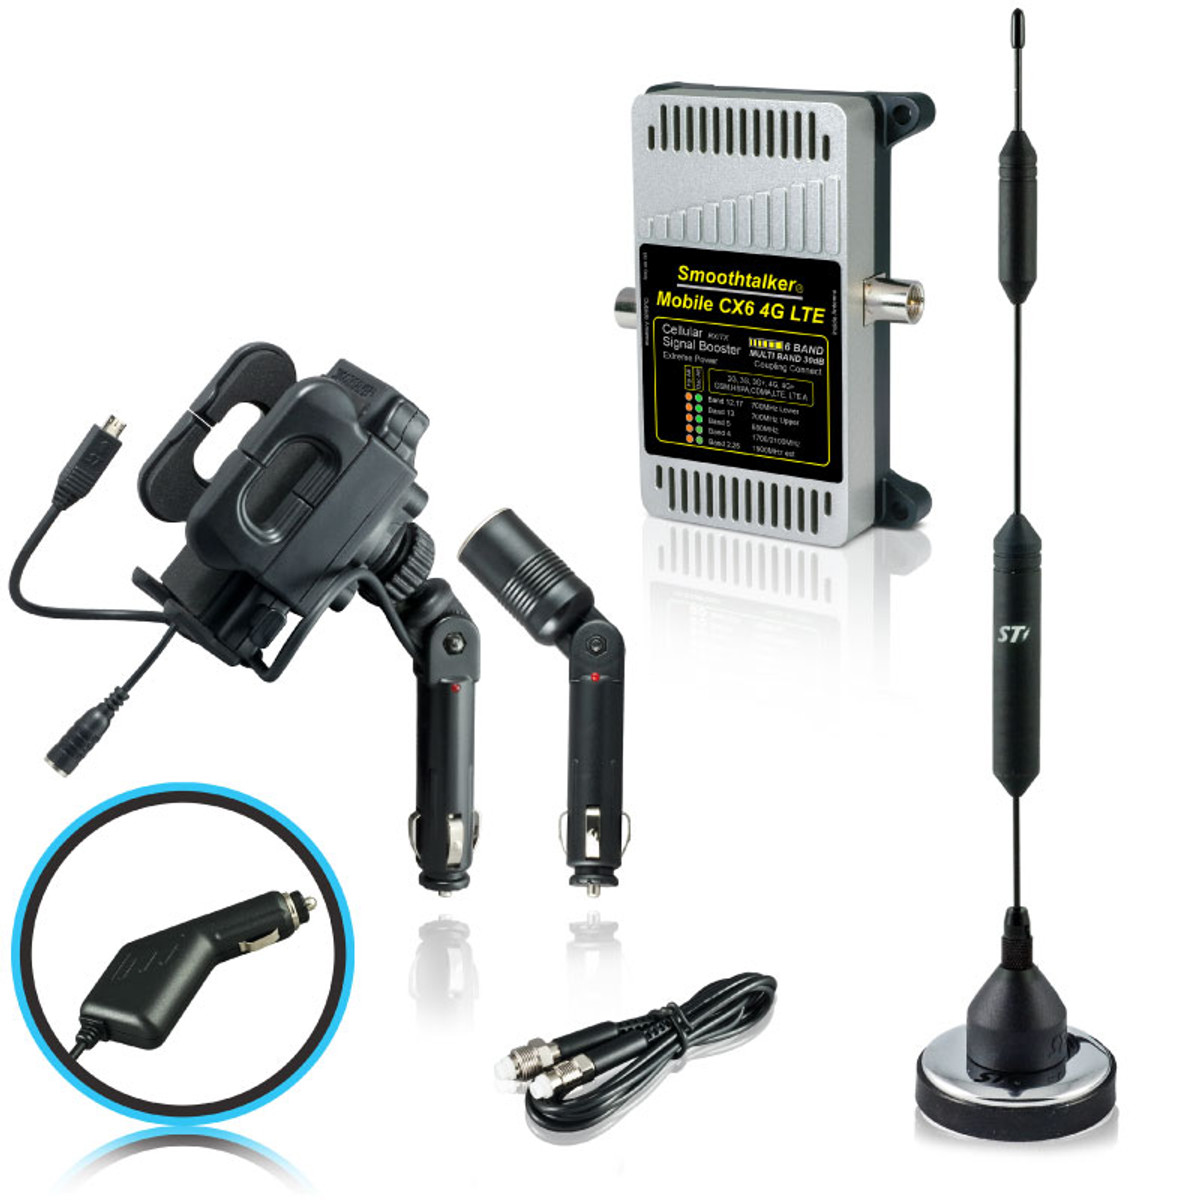 SmoothTalker Mobile CX6 Cradle Cell Signal Booster